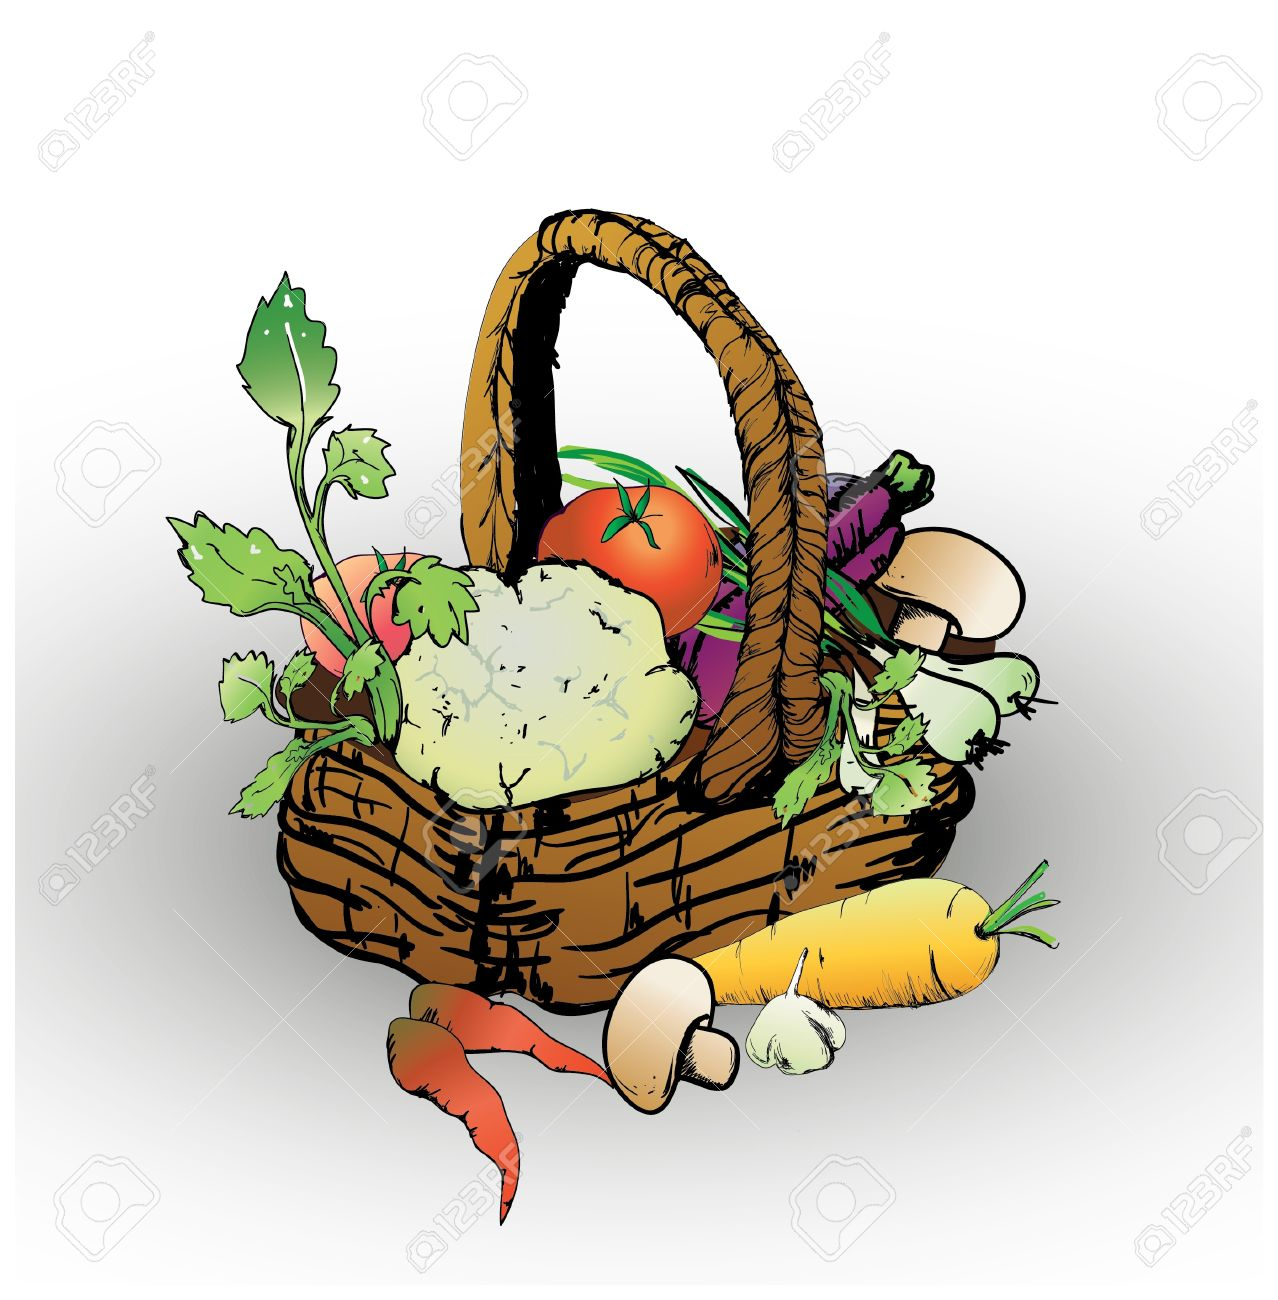 Basket With Vegetables And Mushrooms And Greens Royalty Free